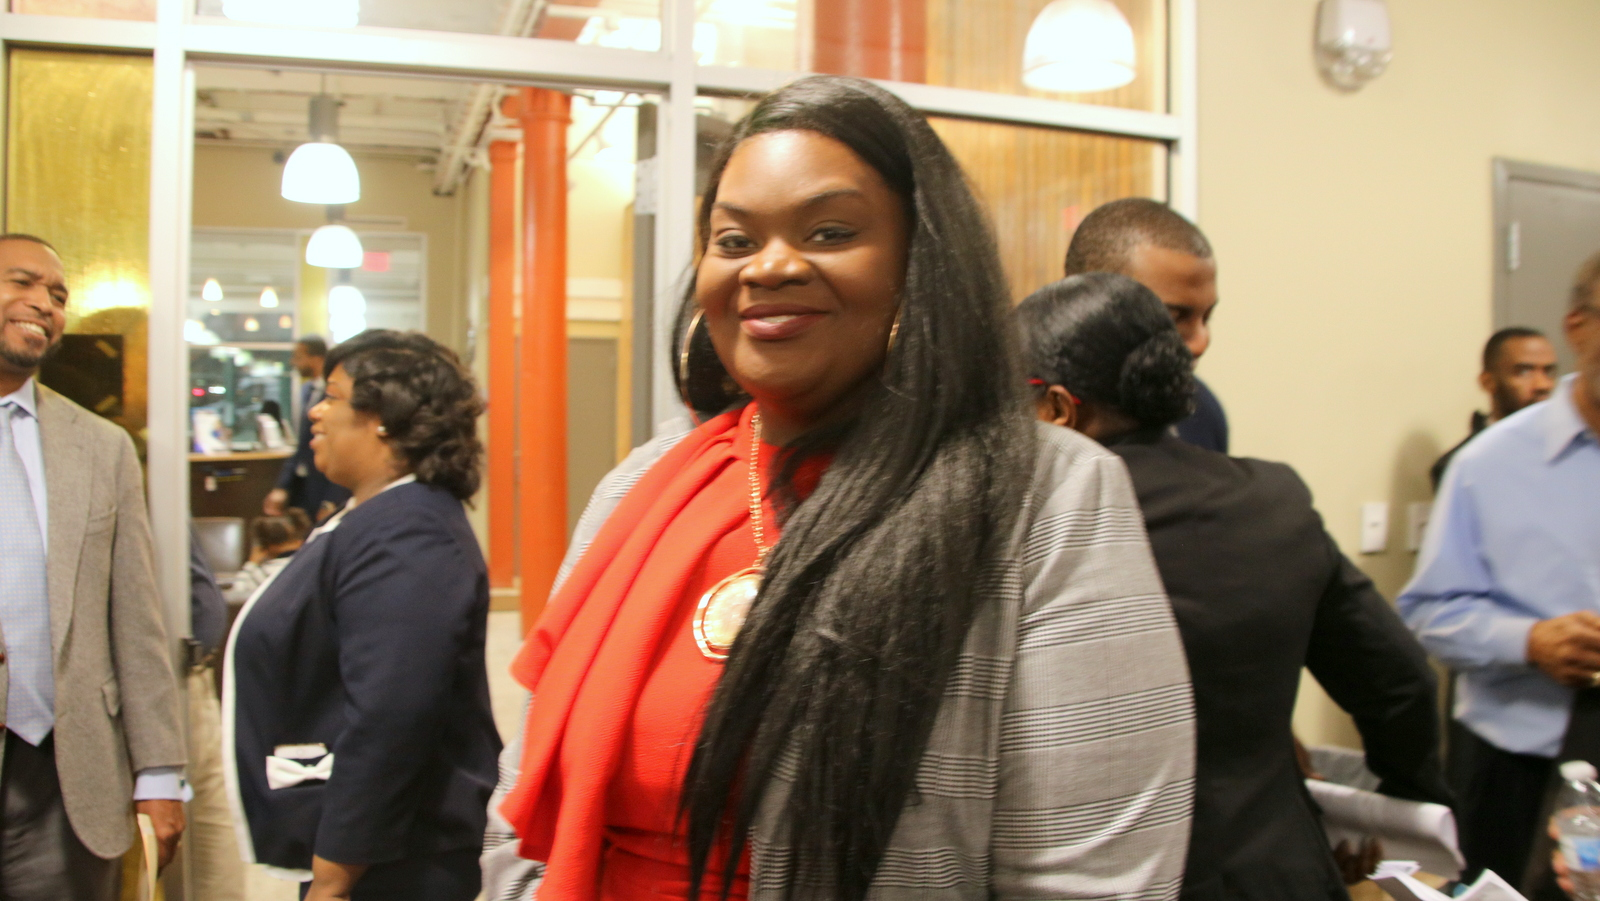 At a Democratic party meeting to fill a legislative vacancy, candidate Tiffany Jones said she felt